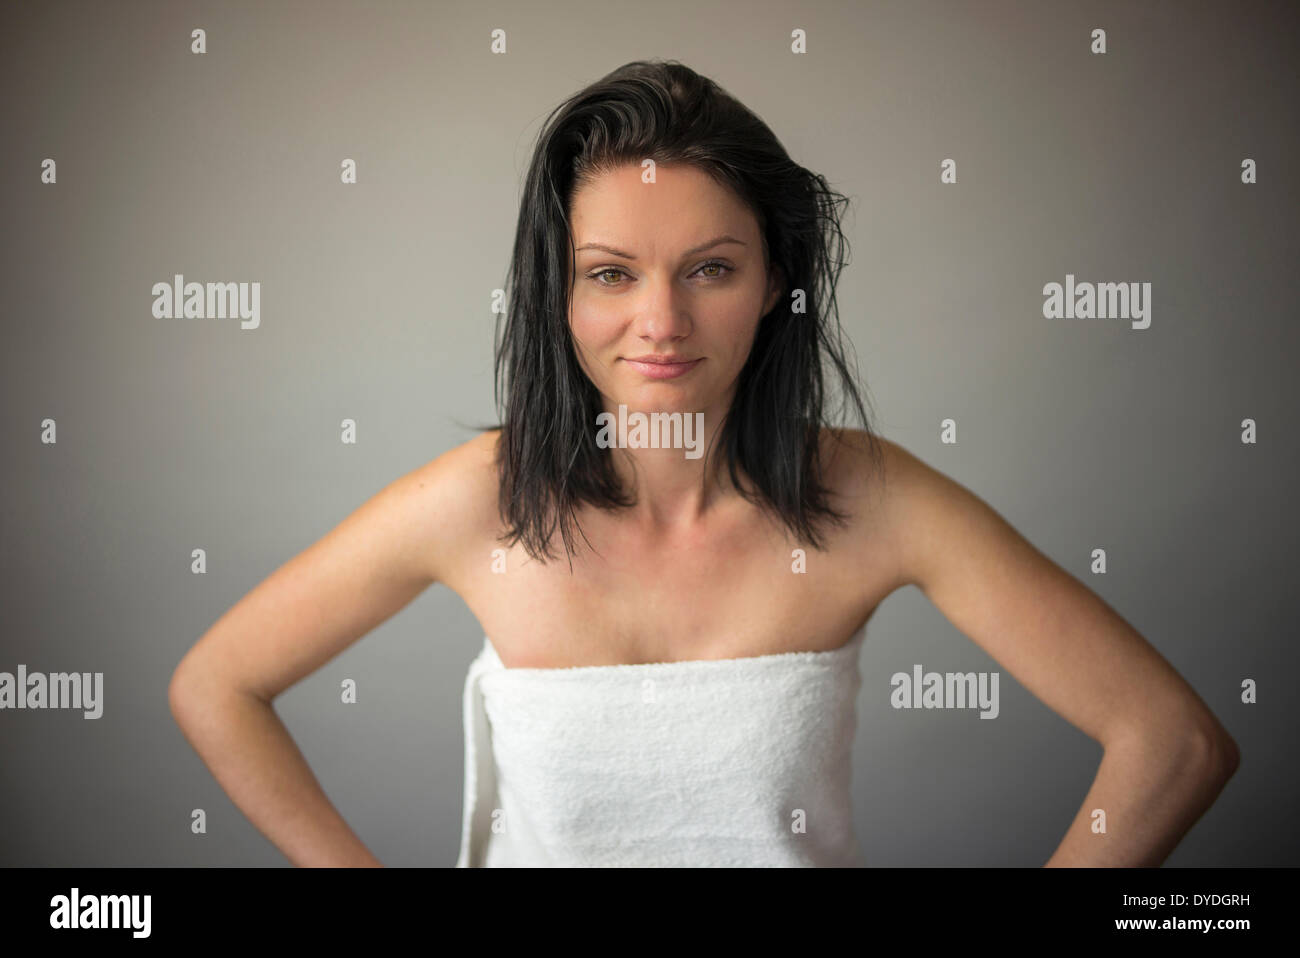 A young woman wearing a towel. - Stock Image